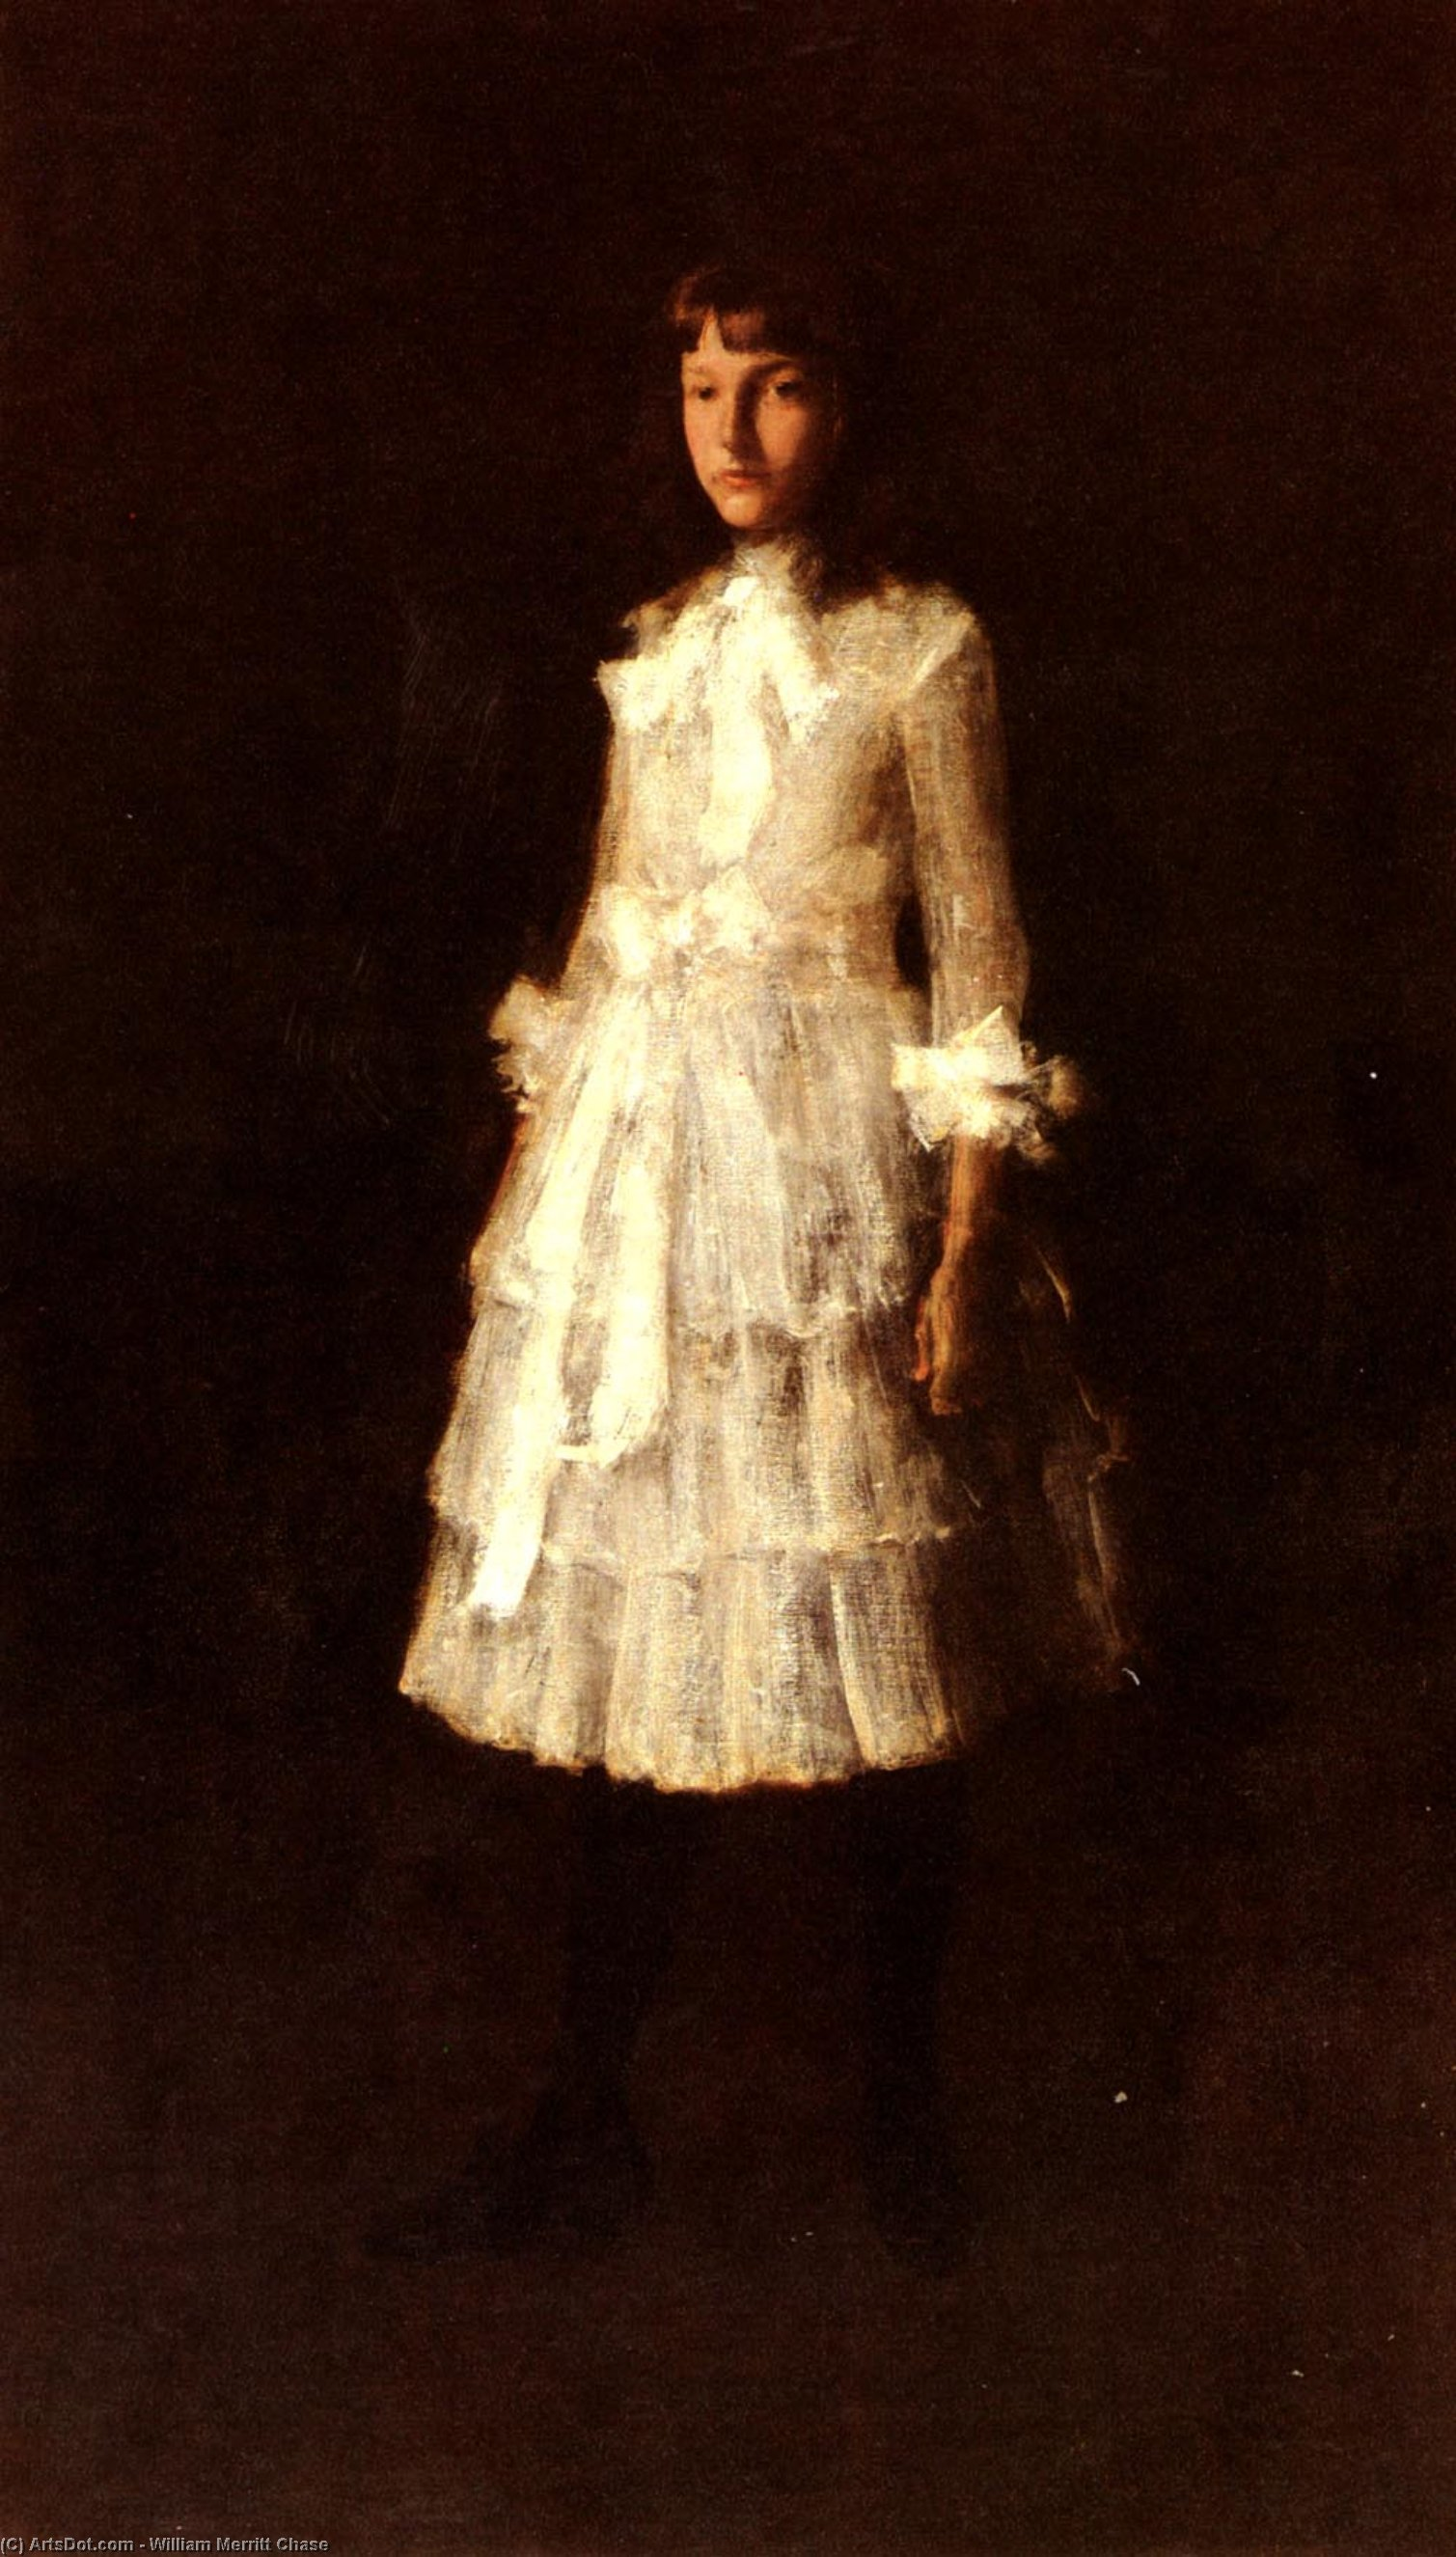 , холст, масло по William Merritt Chase (1849-1916, United States)